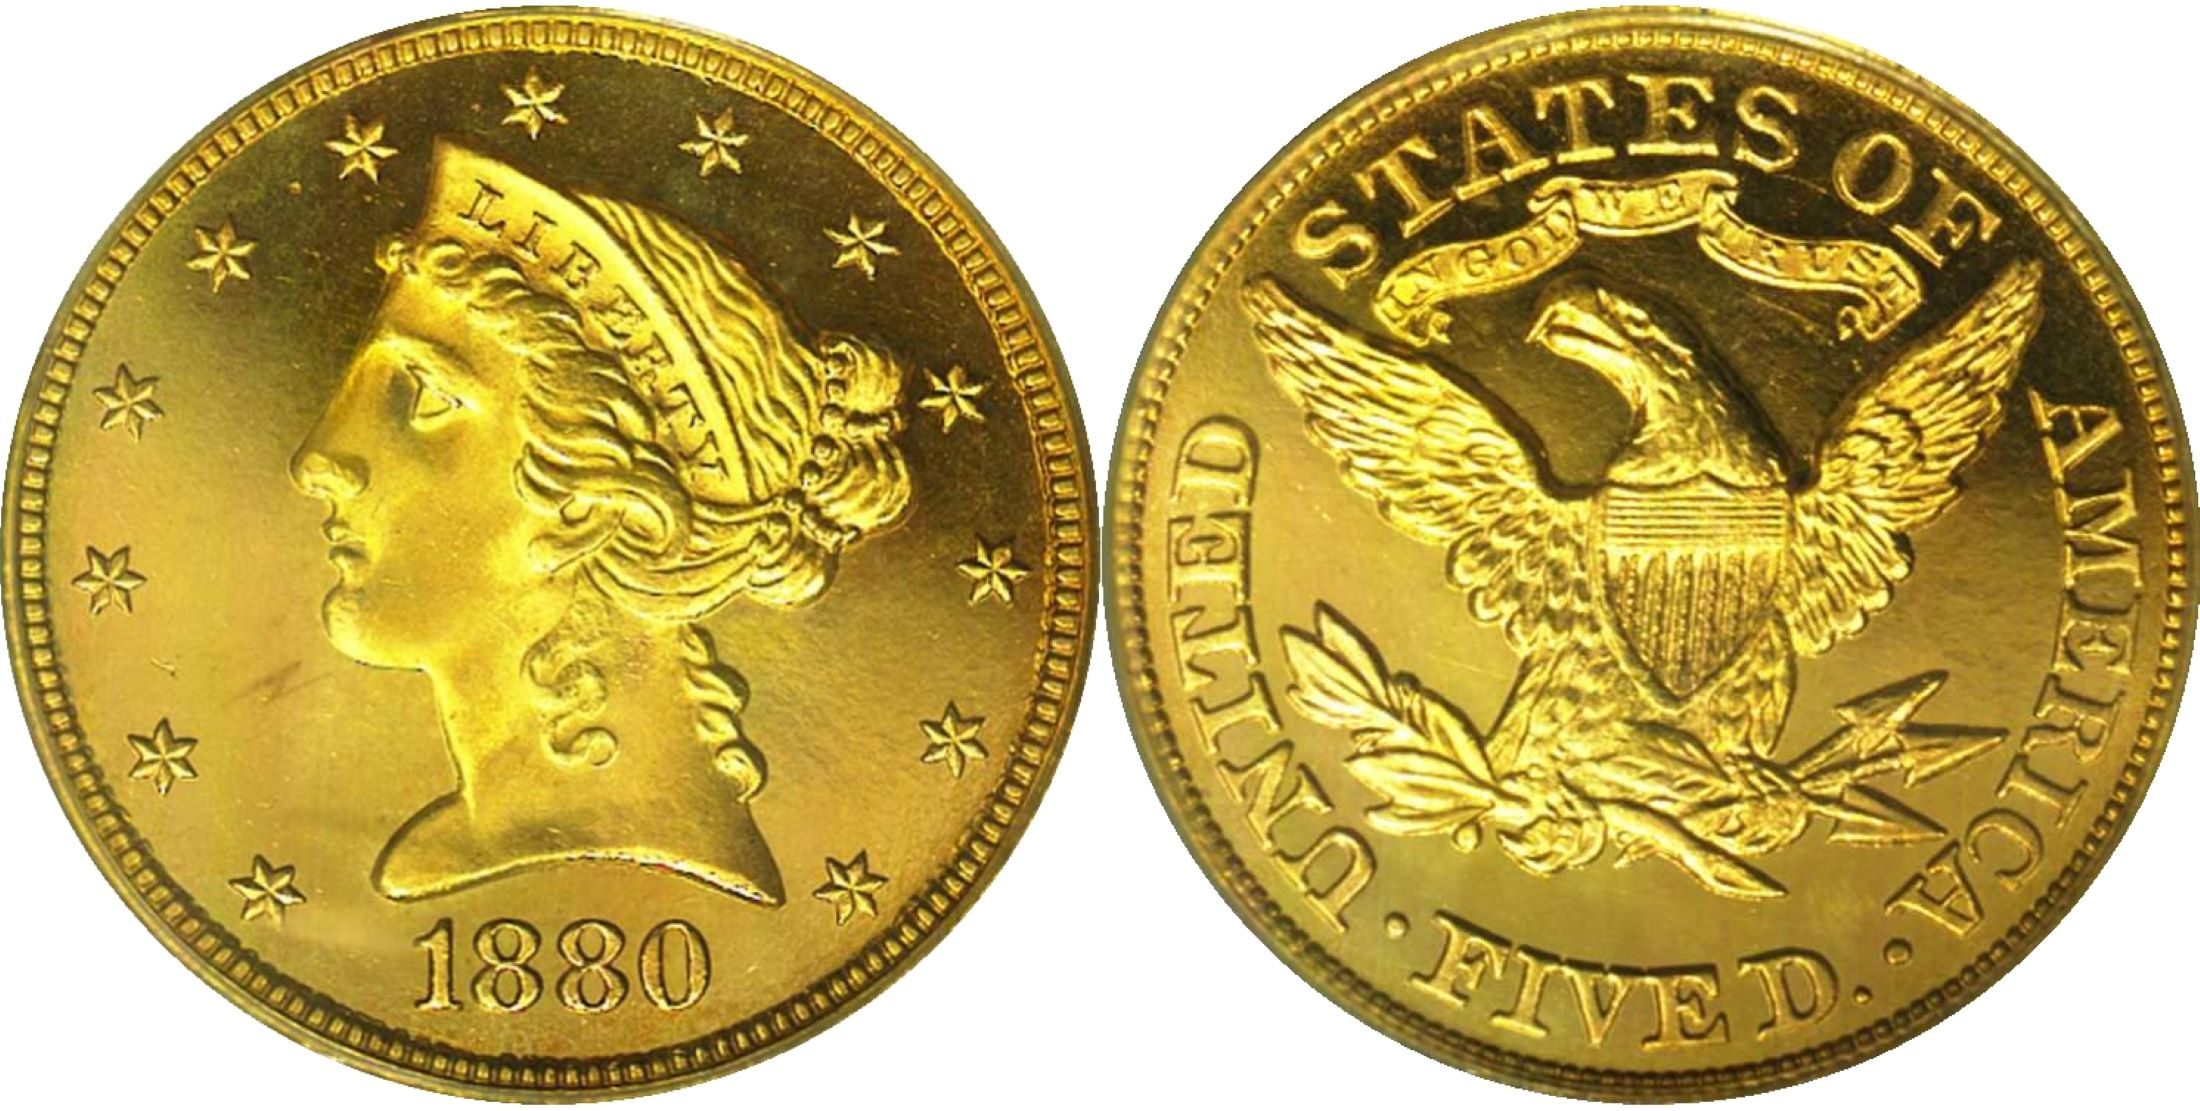 """PCGS PR64<BR>Image courtesy of <a href=""""http://www.ha.com"""" target=""""_blank"""">Heritage Numismatic Auctions</a>"""